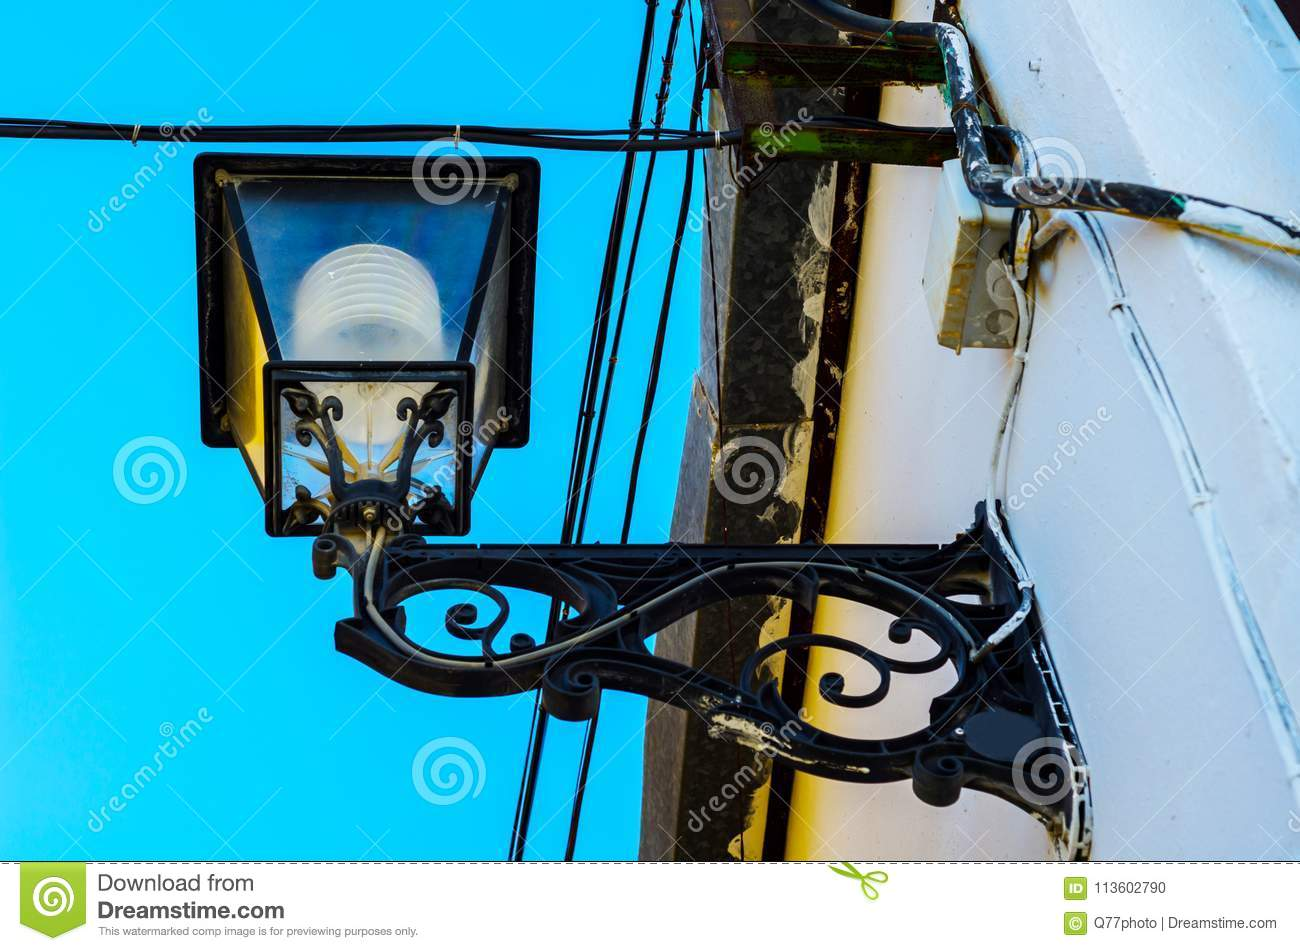 Old Stylish Street Lamp Illuminating The Spanish Street, A ... on electrical repair, electrical contracting, electrical diagrams, electrical grounding, electrical cables, electrical tools, electrical equipment, electrical energy, electrical conduit, electrical shocks, electrical box, electrical fire, electrical engineering, electrical technology, electrical volt, electrical fuses, electrical circuits, electrical receptacle types, electrical cord, electrical wire,